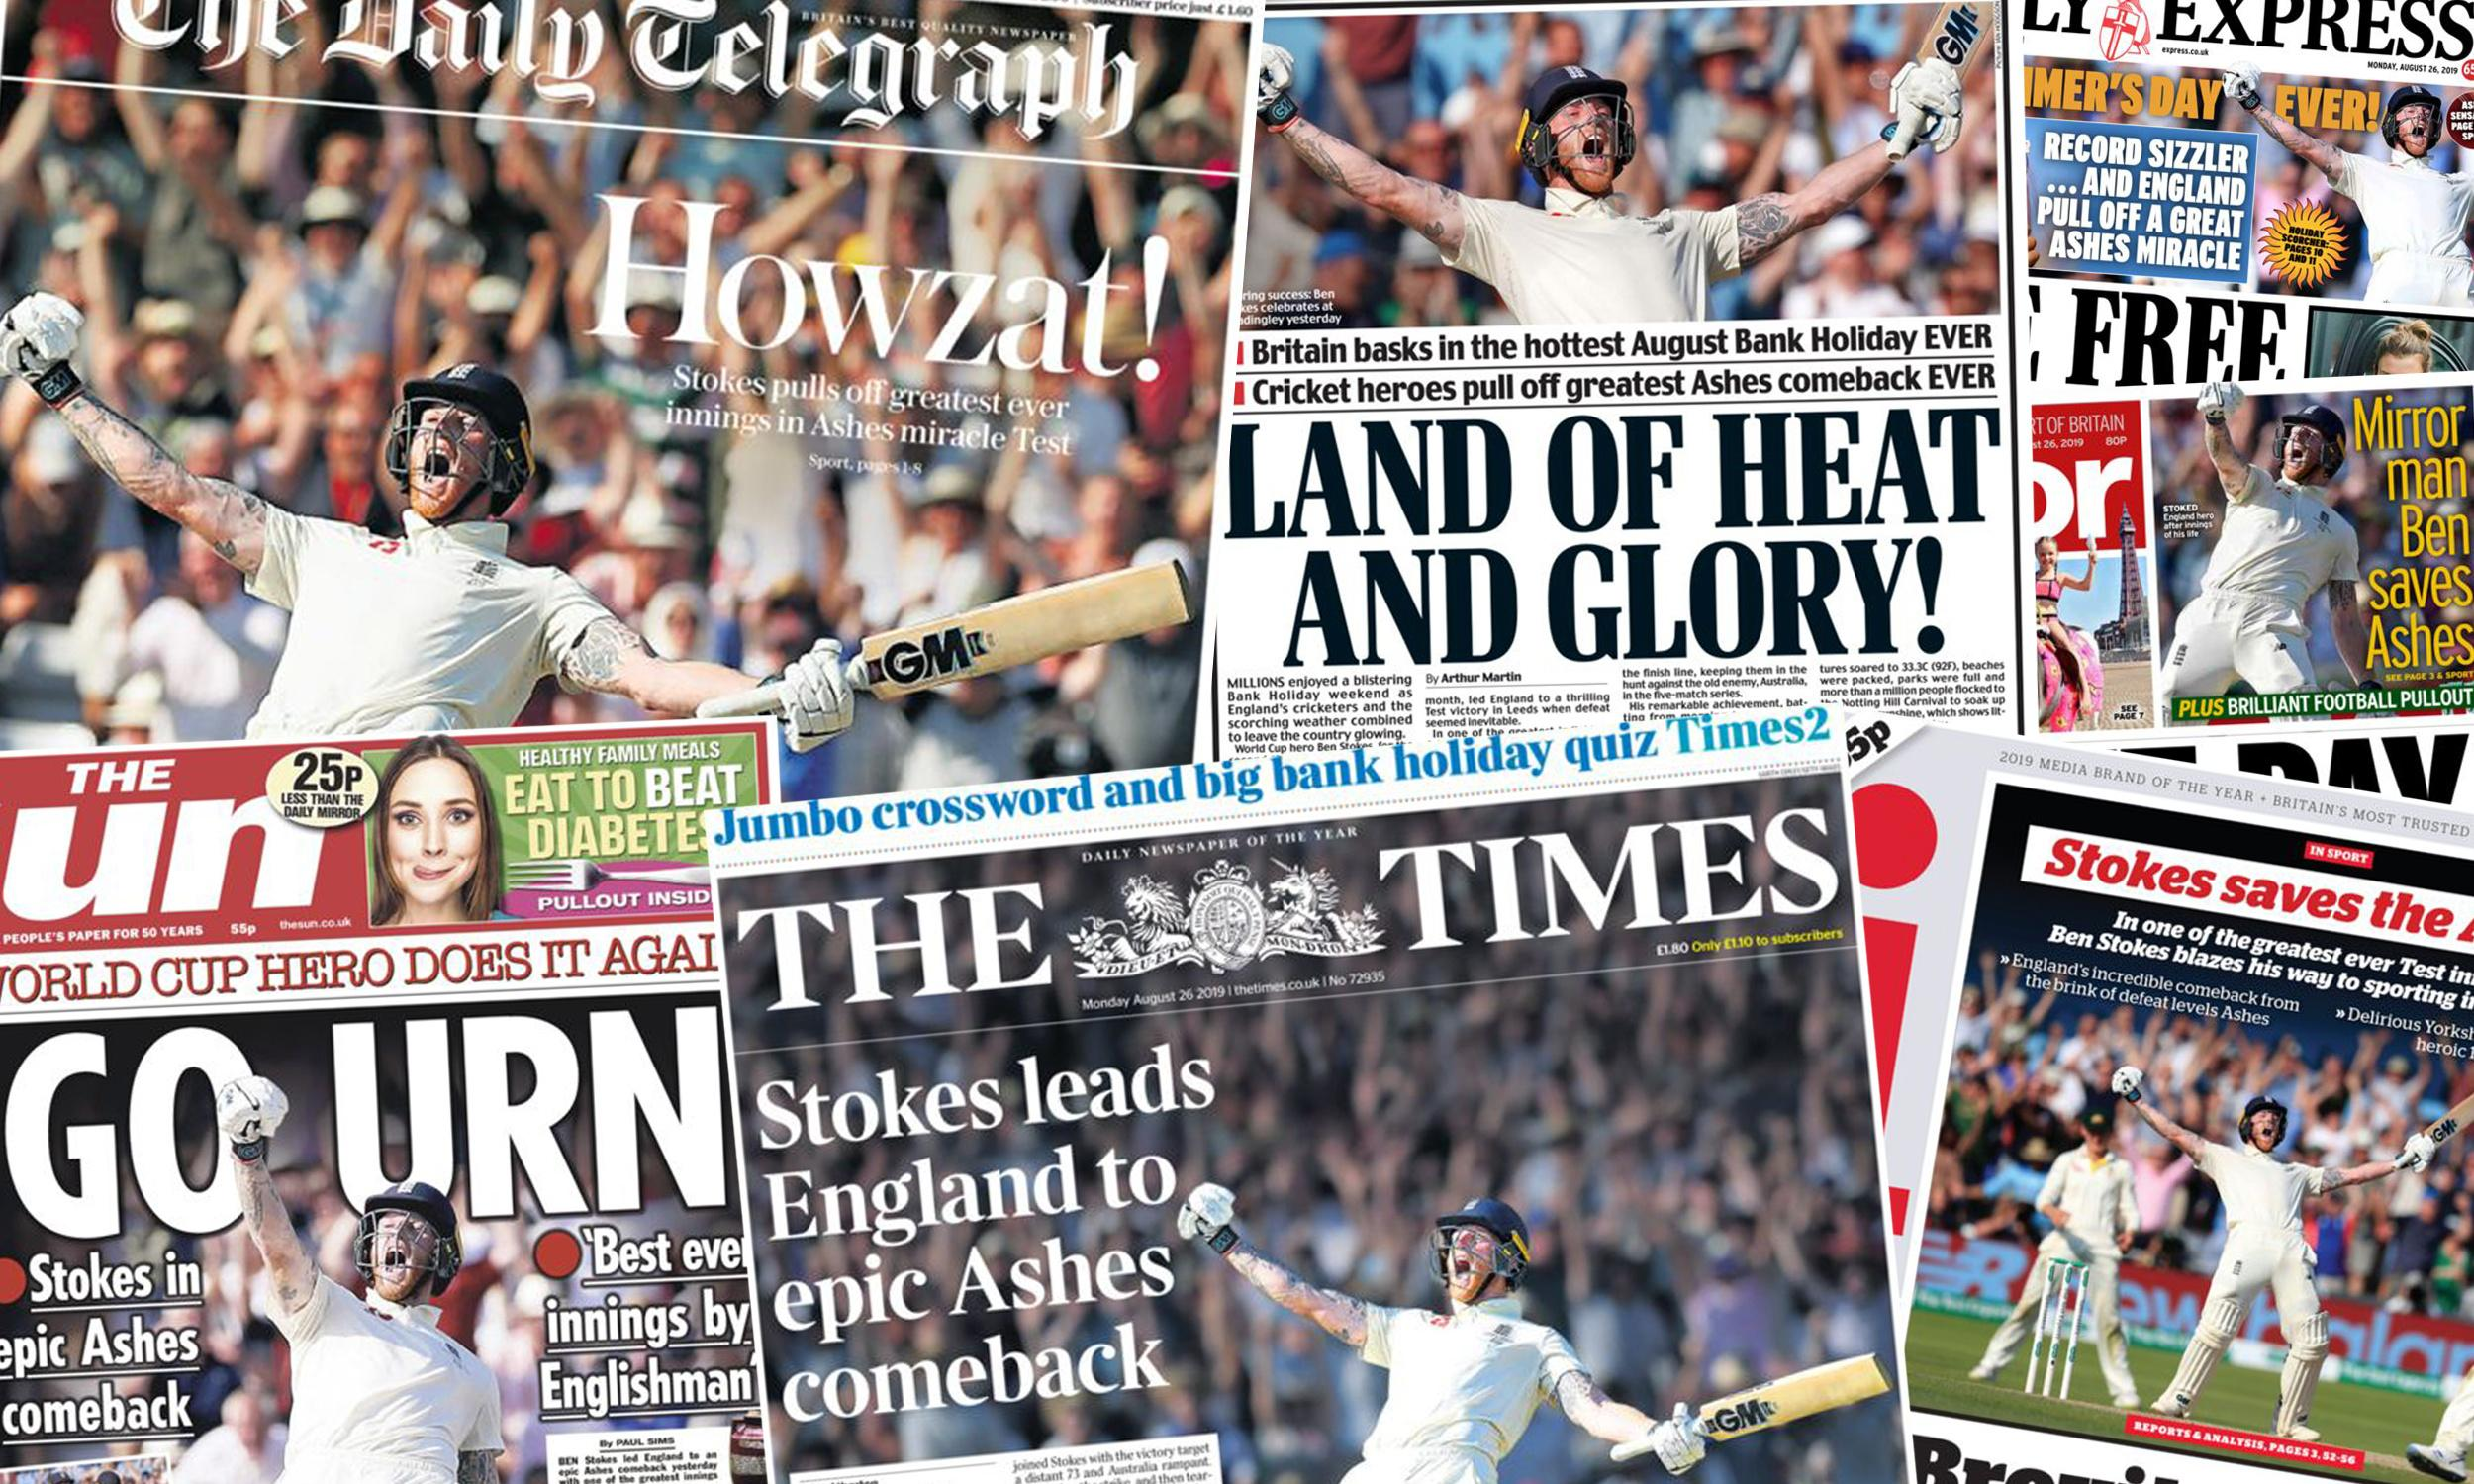 'Go urn, my son': what the papers say about England's Ashes comeback